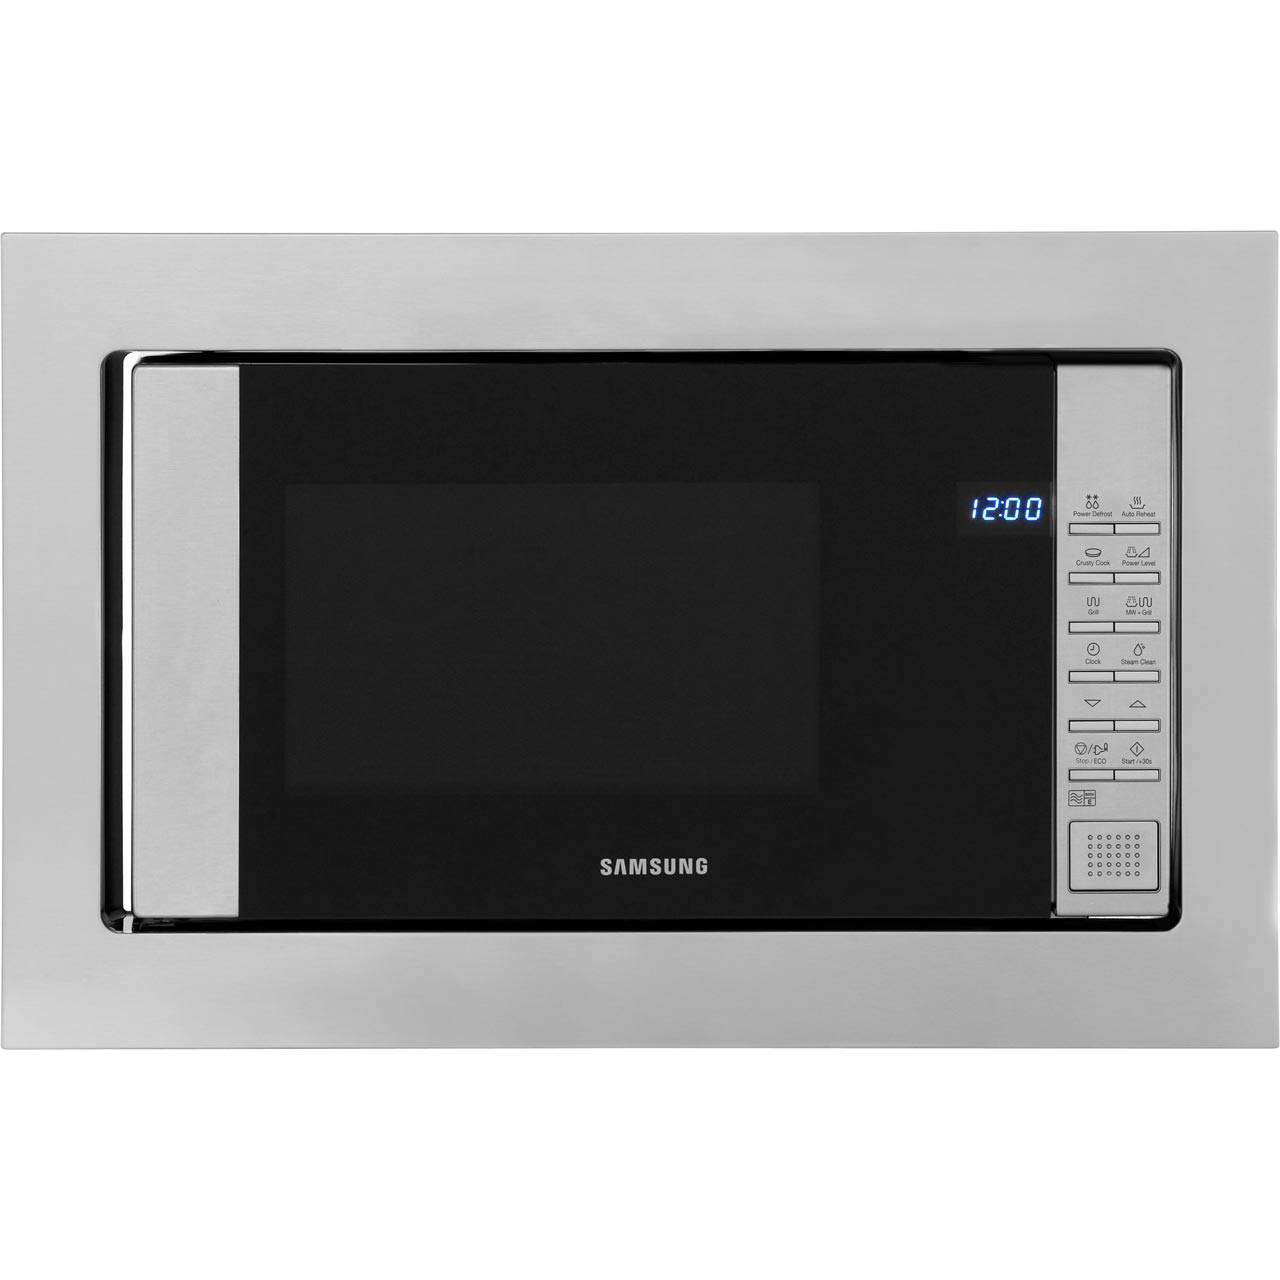 Microwave Sunbeam Wiring Diagram Blog About Diagrams Oven Schematic Samsung